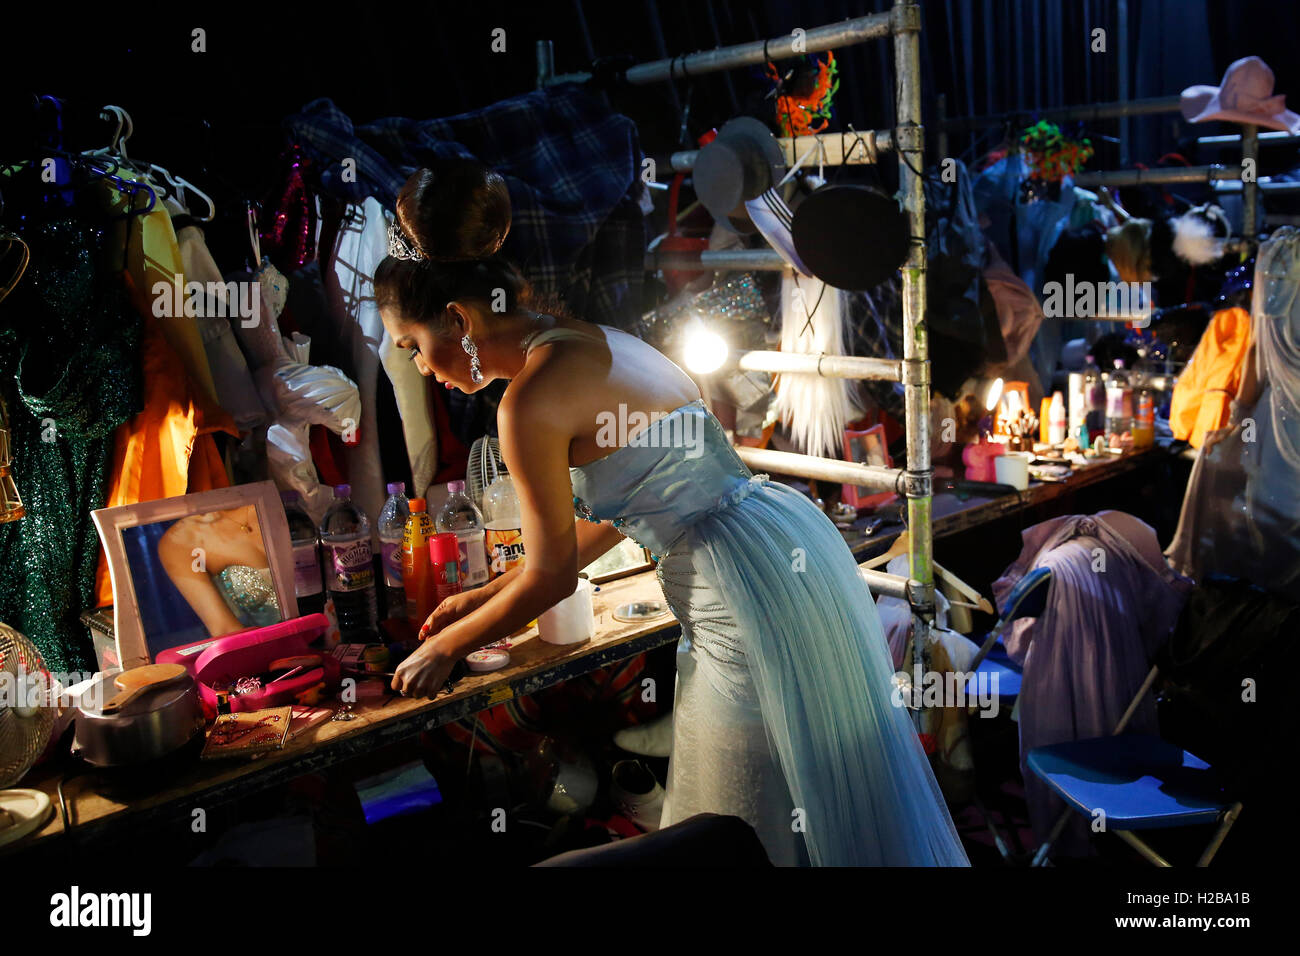 Performer Sonya, prepares backstage for the Lady Boys of Bangkok show 'Beauties and the Beats' - Stock Image